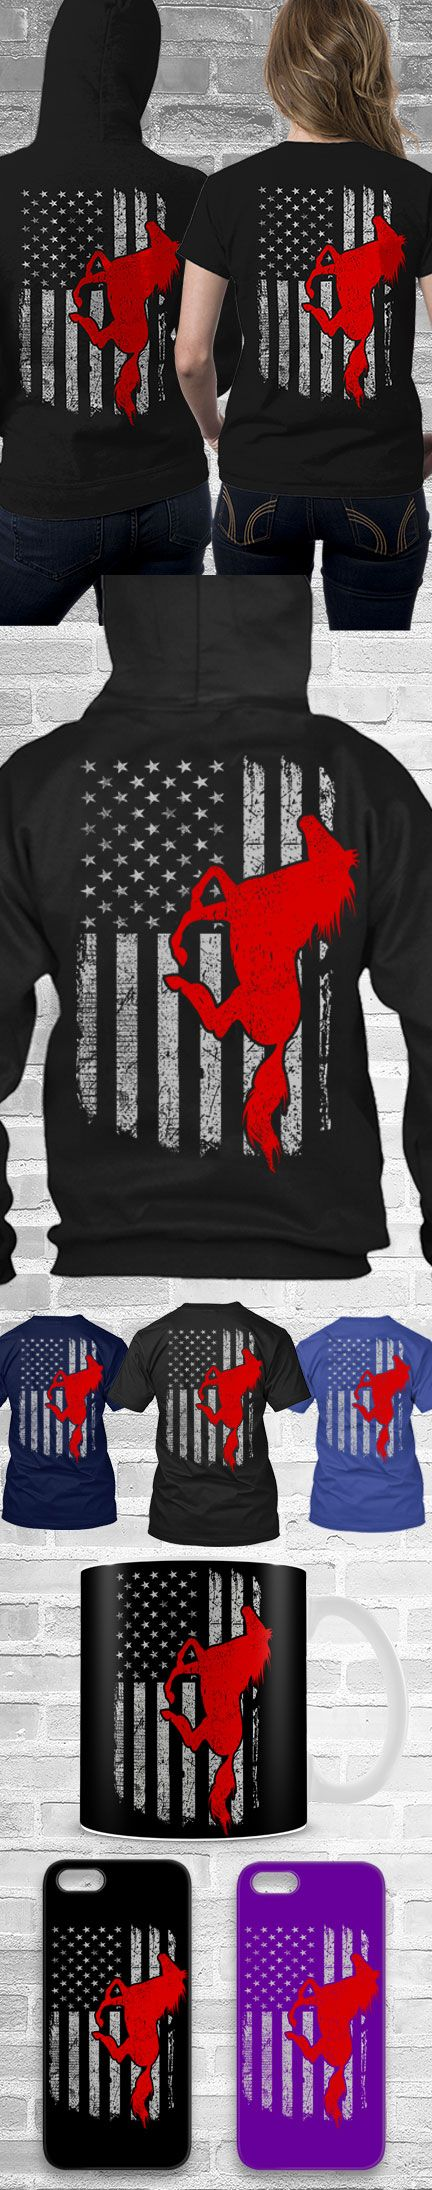 Horse USA Flag Shirts! Click The Image To Buy It Now or Tag Someone You Want To Buy This For.  #horseriding